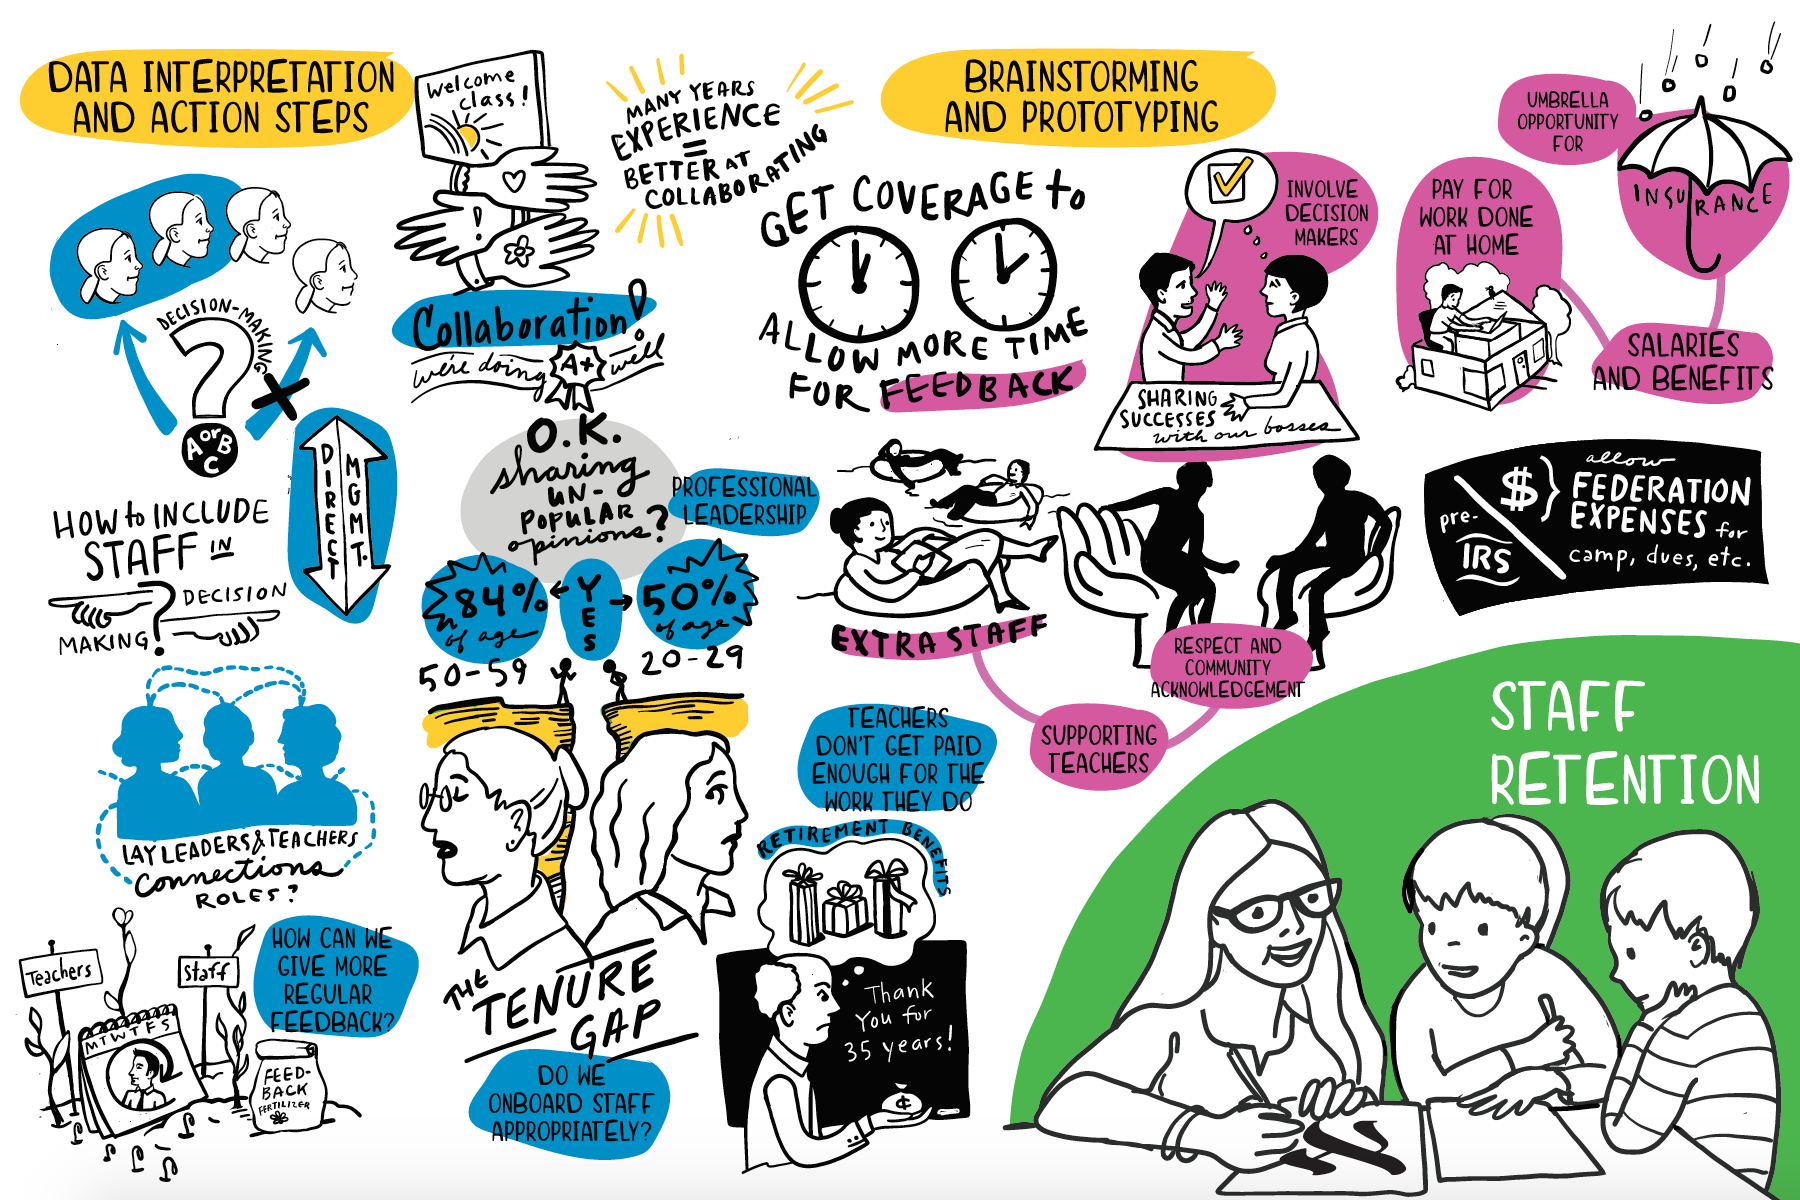 JUF Early Childhood Education Research Outcomes Illustration 4